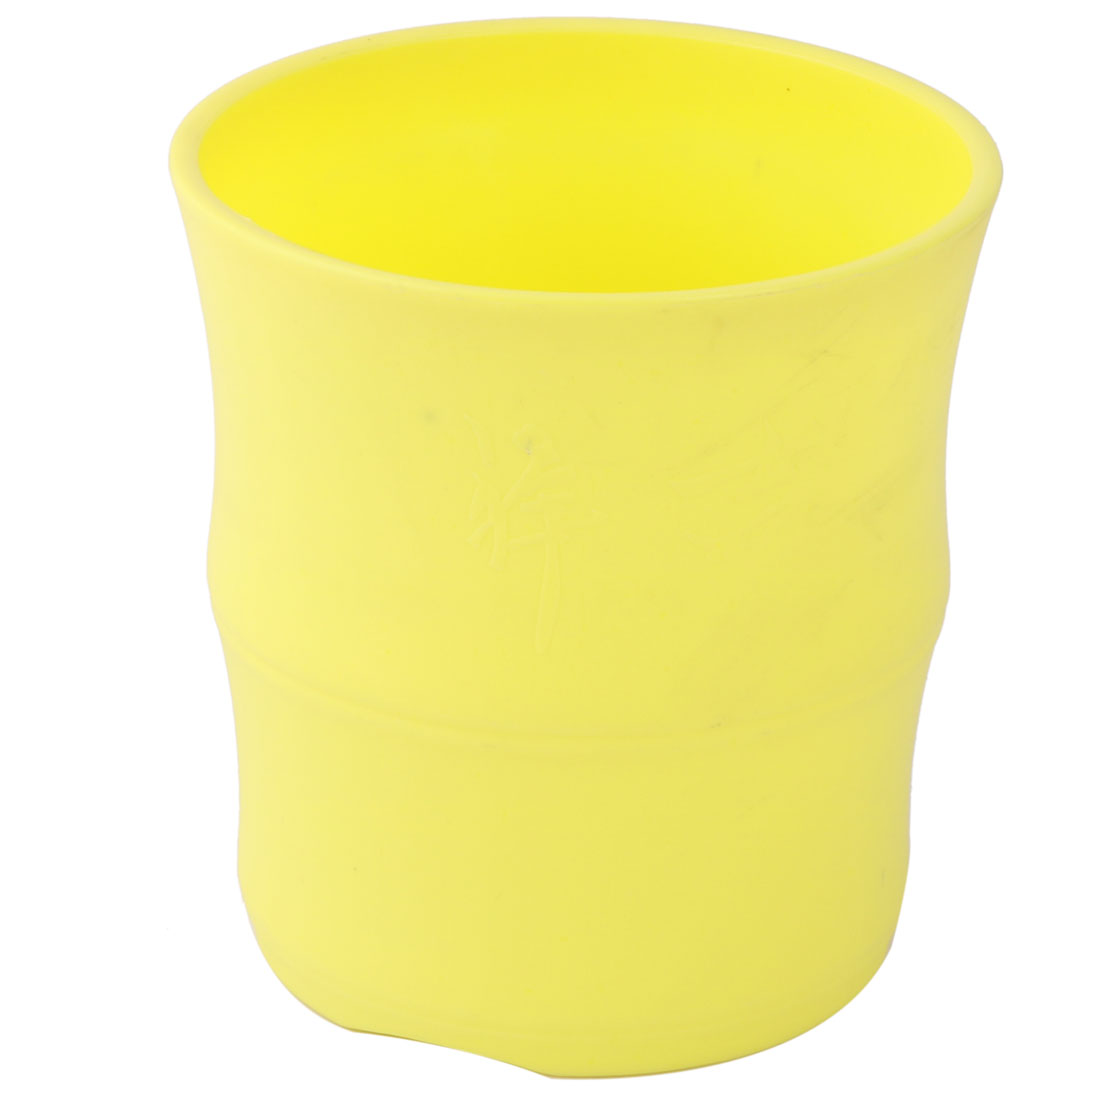 Home Decor Plastic Round Flower Aloes Cactus Plant Pot Holder Container Yellow